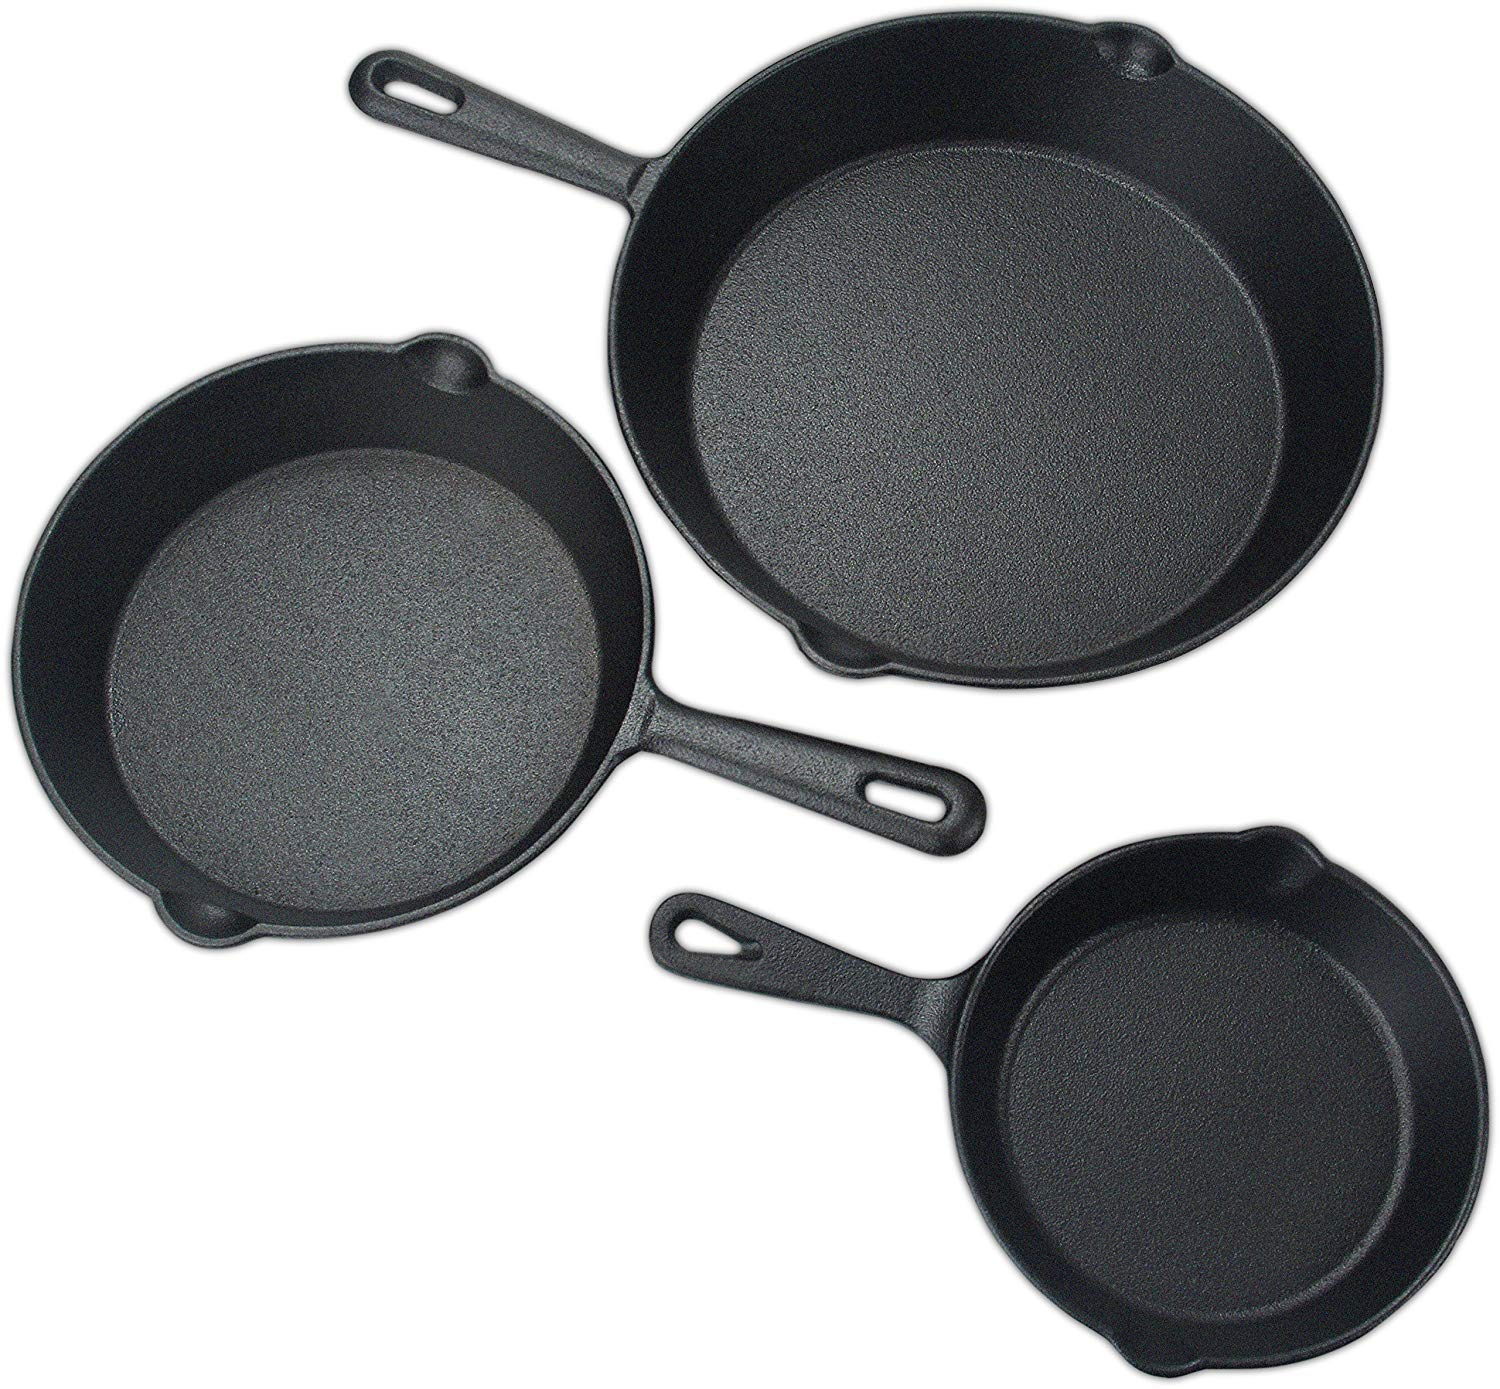 Amazon.com: Utopia Kitchen Pre-Seasoned Cast Iron Skillet Set 3-Piece - 6 Inch, 8 Inch and 10 Inch - Bulk Pack of 4 Sets: Kitchen & Dining